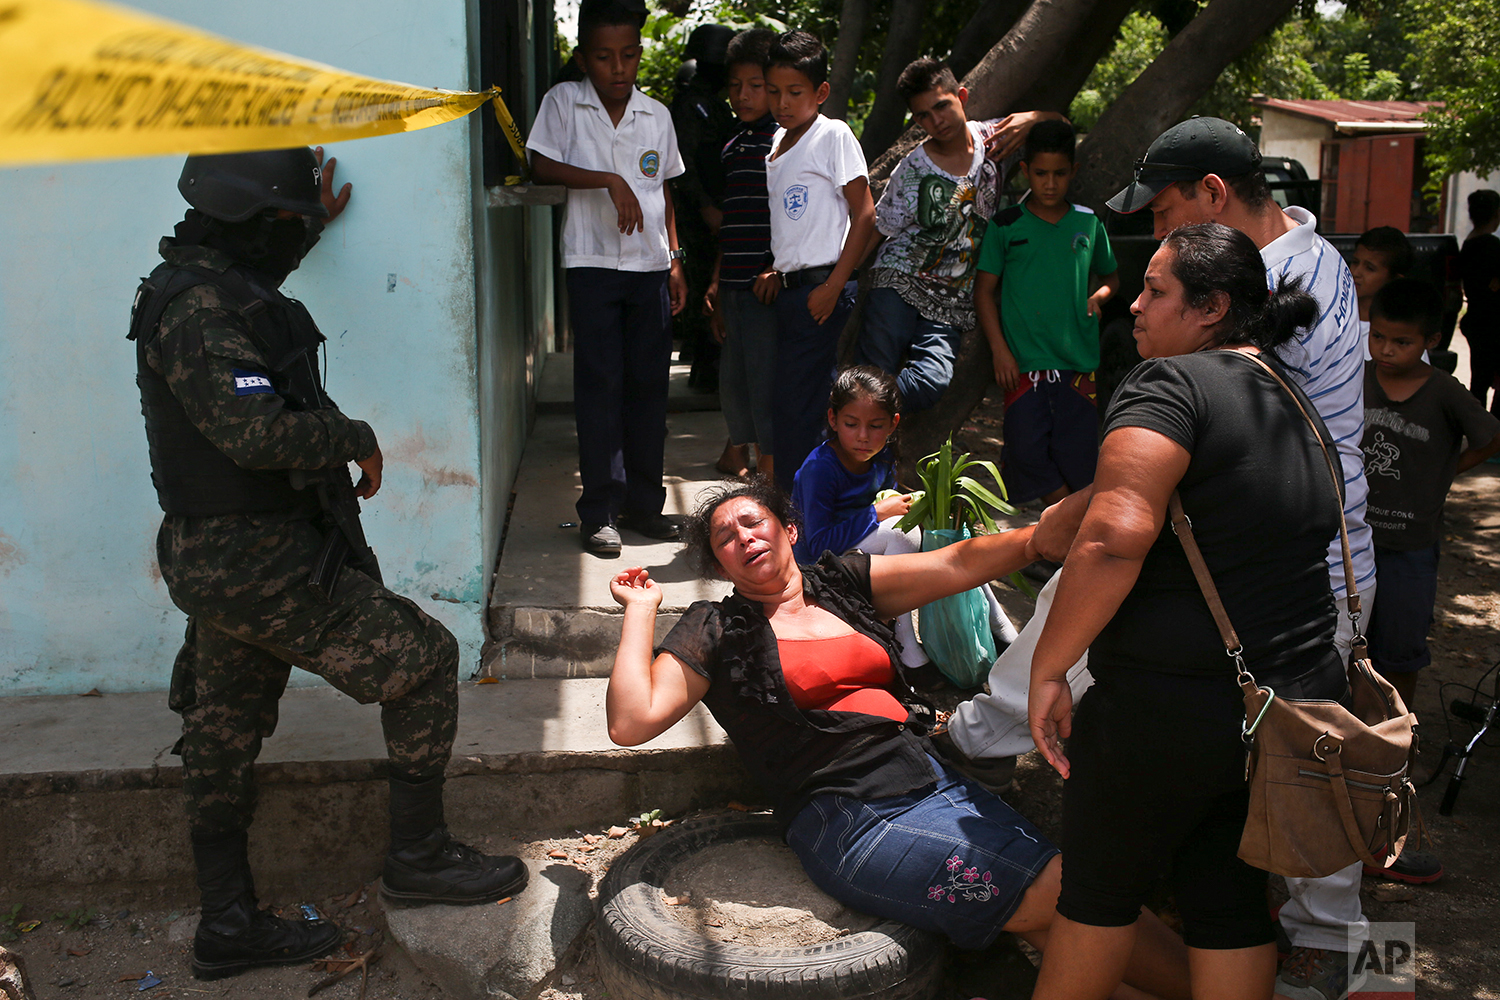 In this July 9, 2018 photo, a woman breaks down crying on the perimeter of a crime scene where her only son Javier Antonio Santos, 18, was killed during a shootout with military police, where an officer also died, in the Chamelecon neighborhood of San Pedro Sula, Honduras. The two youths who died in the shootout are alleged by police to be Mara gang members, while the mother cried that he was not. (AP Photo/Esteban Felix)